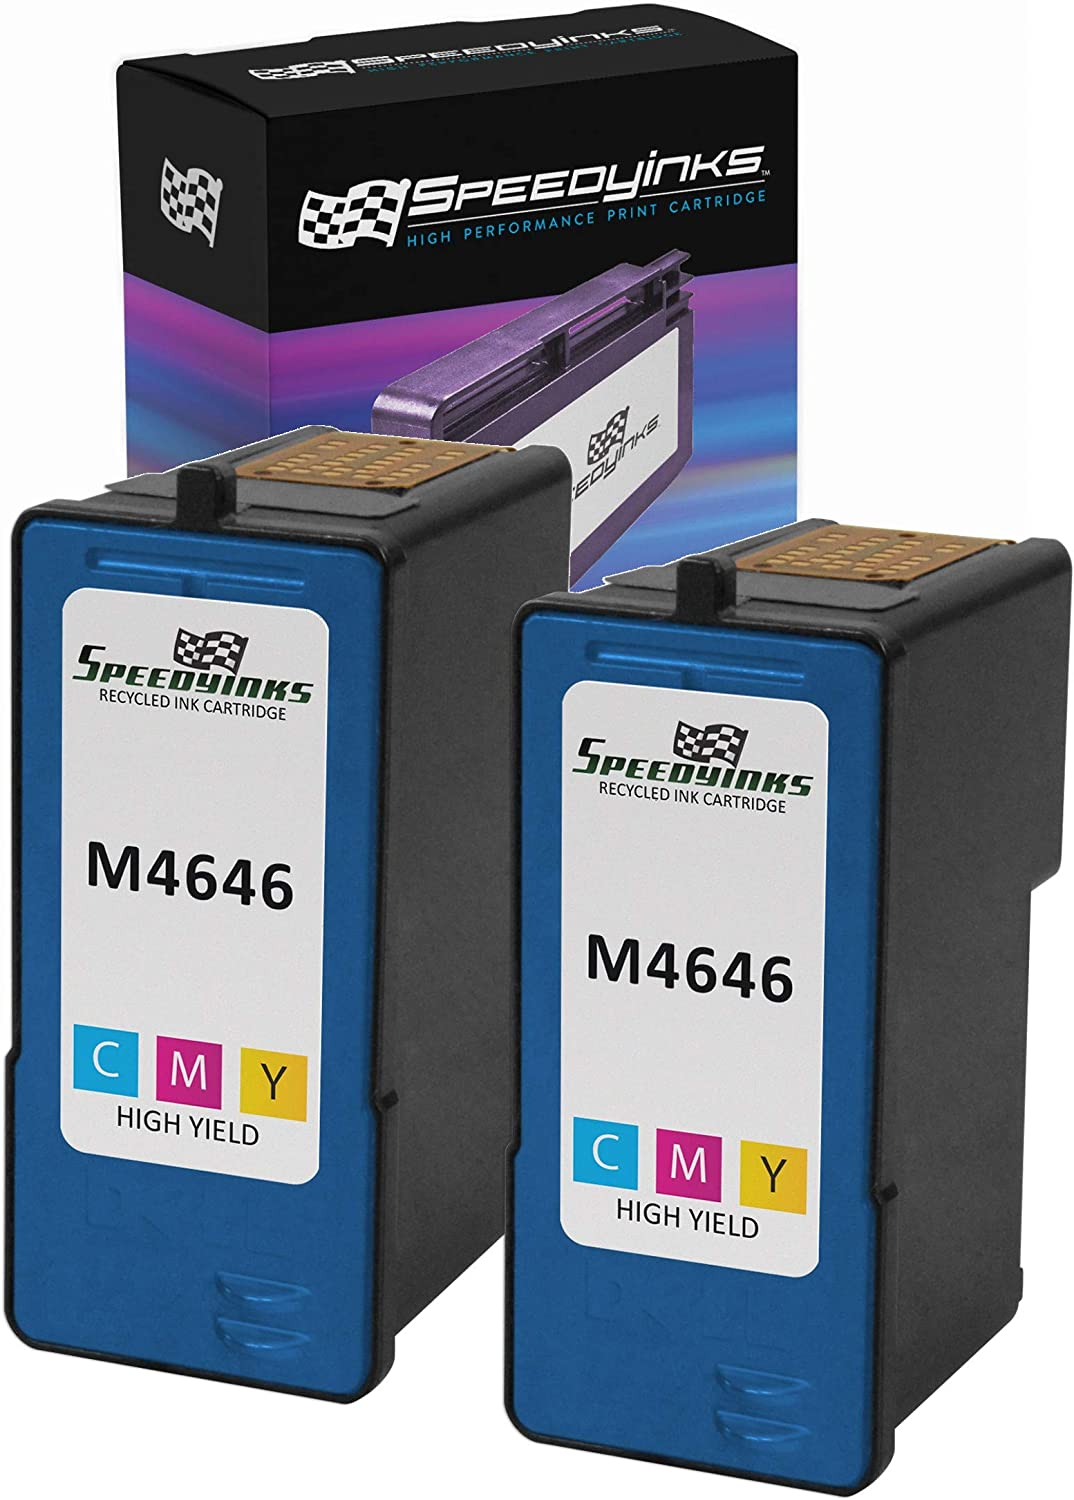 MS Imaging Supply Remanufactured Inkjet Cartridge Replacement for Dell M4646 Multi-Multi-Color, 3 Pack Series 5